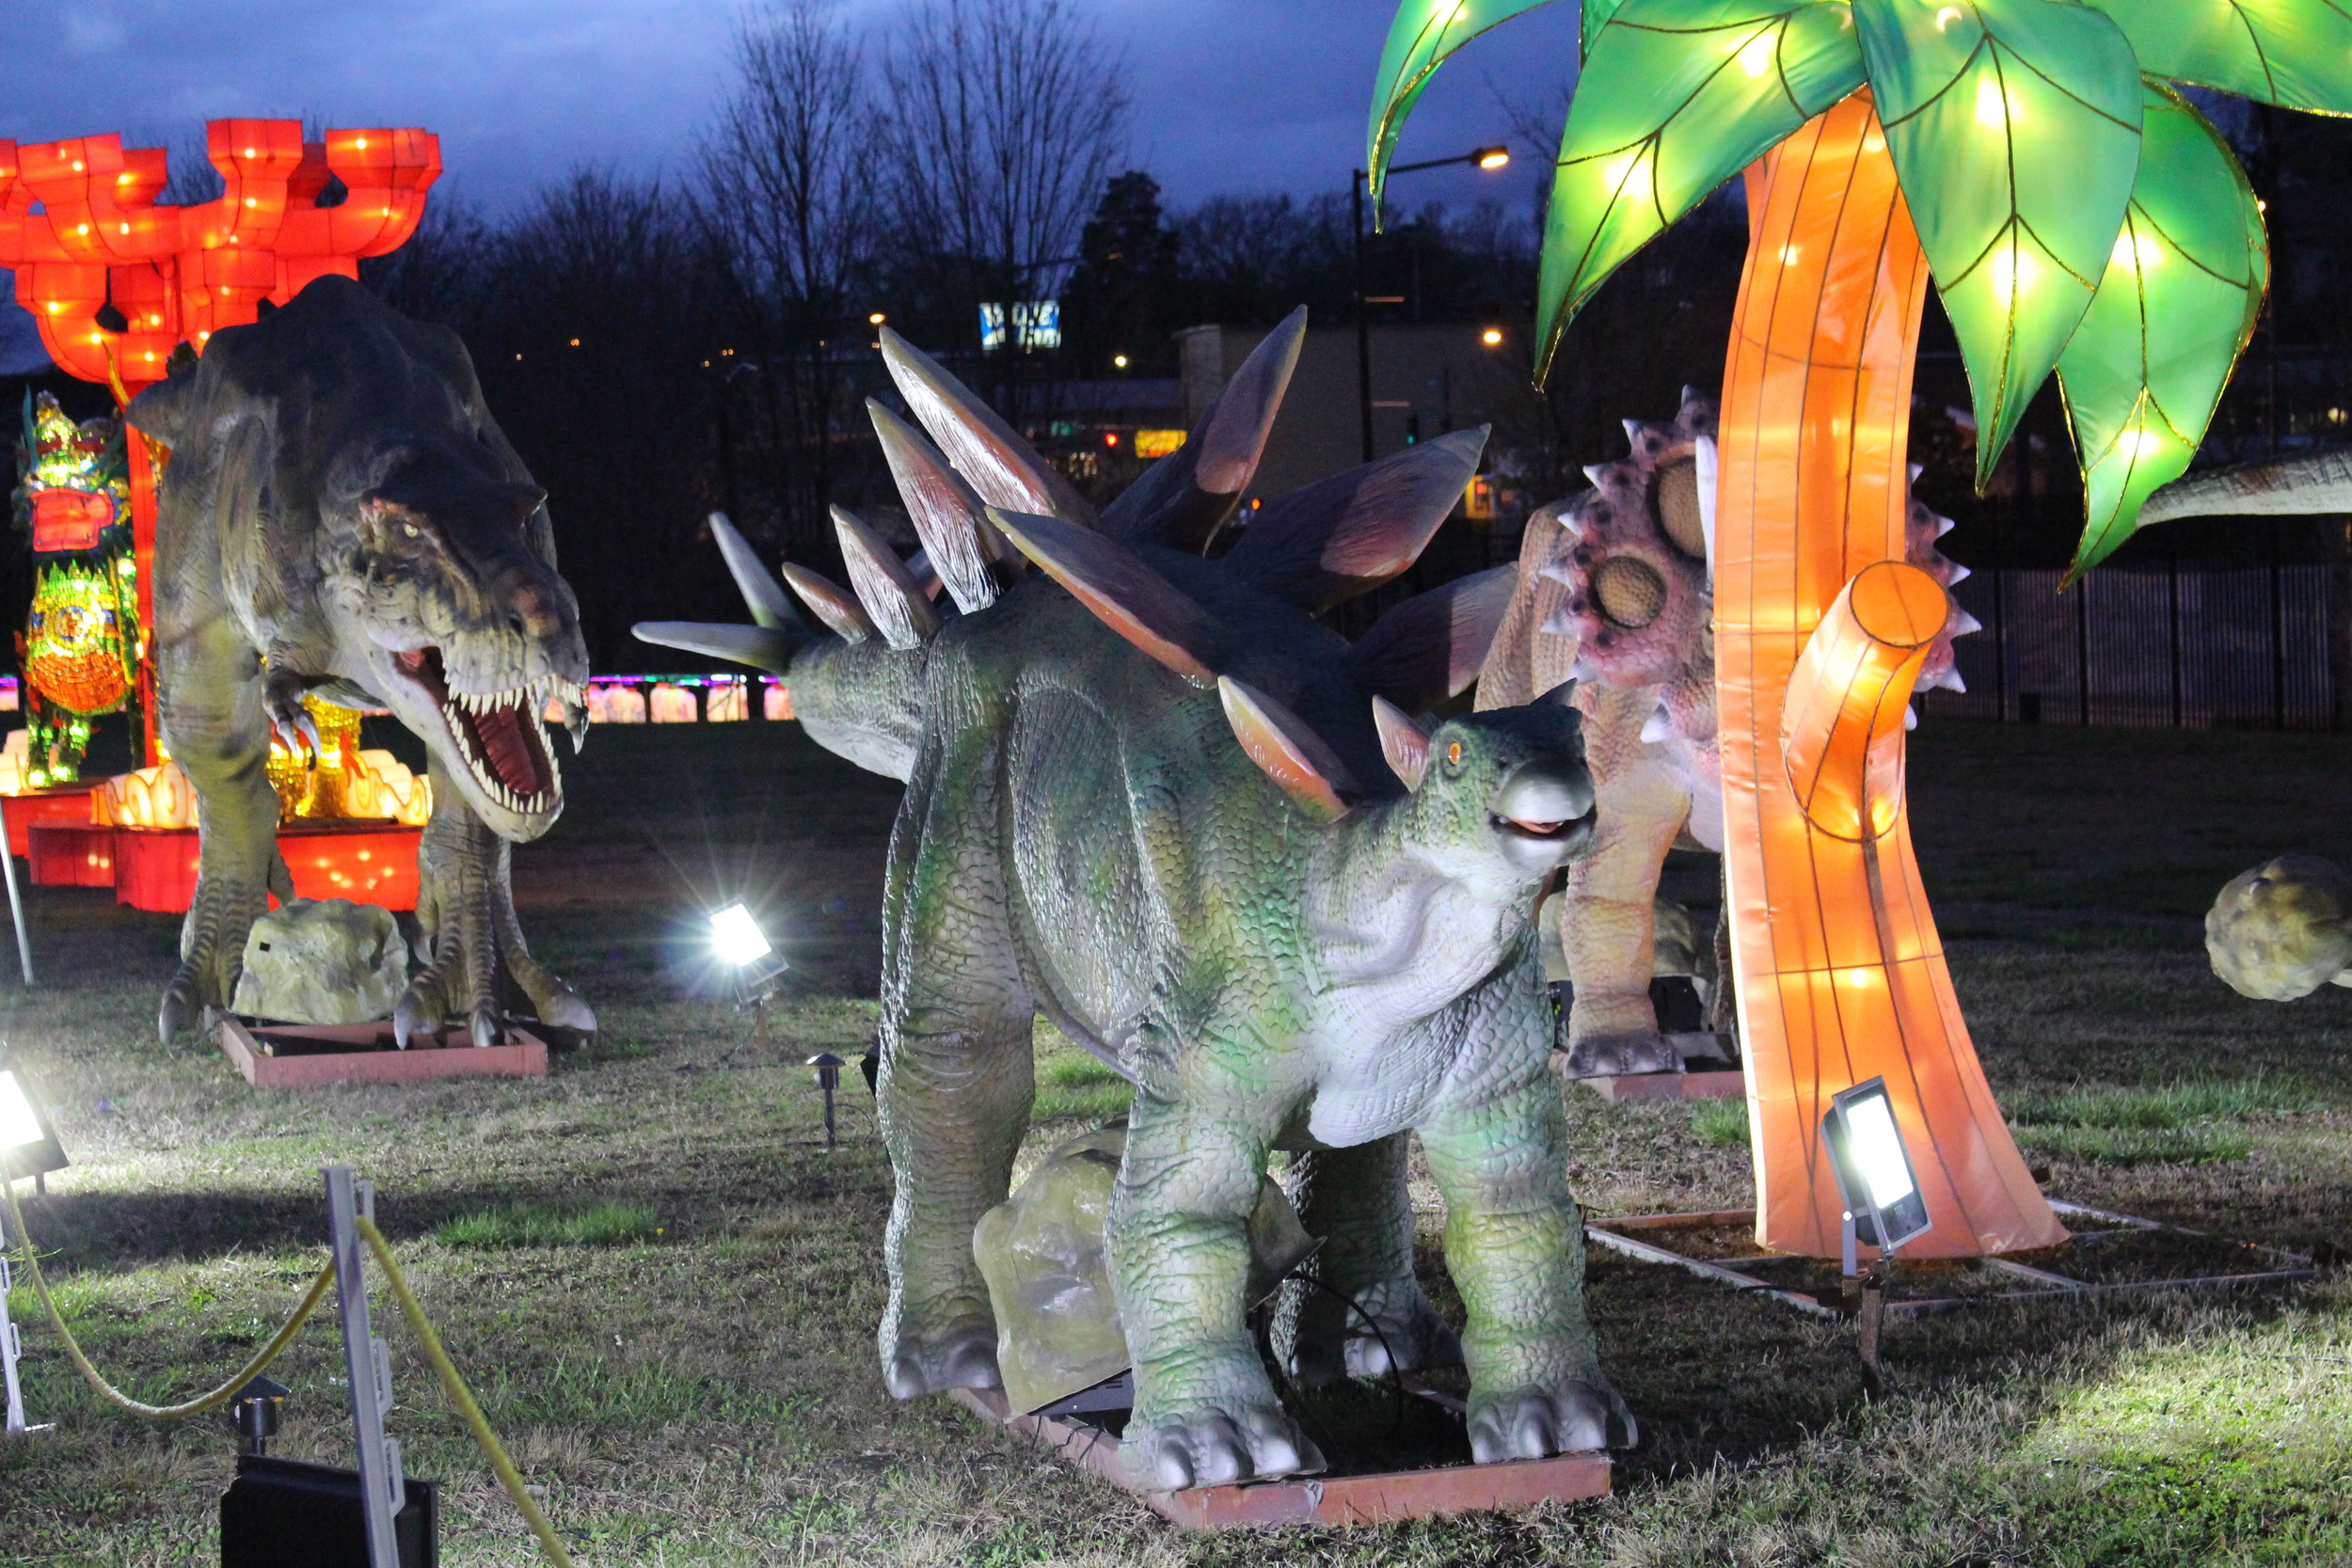 The festival also features animatronic dinosaurs.